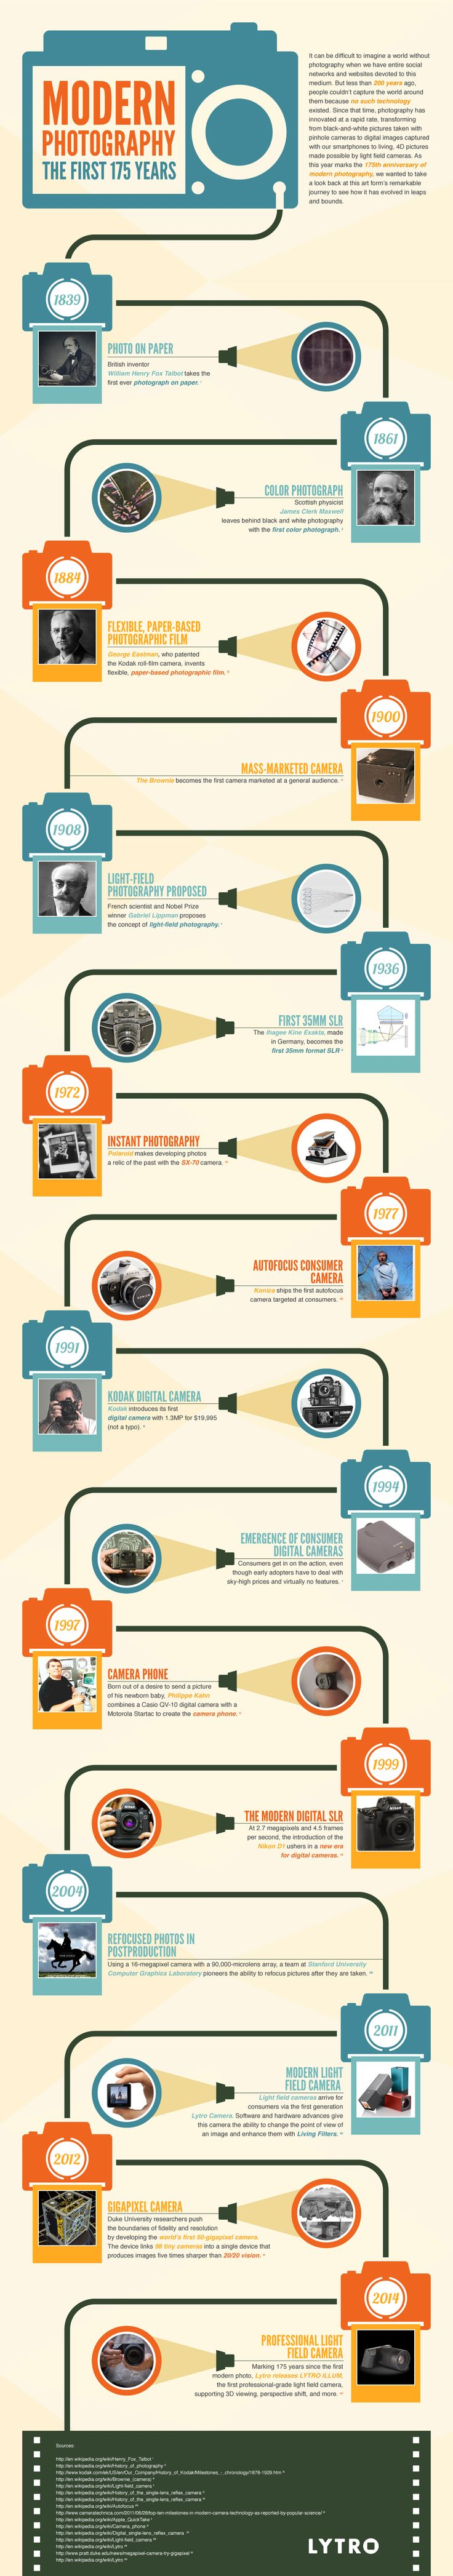 Lytro Celebrates 175 Years of Photography with a History of Cameras Infographic   Fstoppers